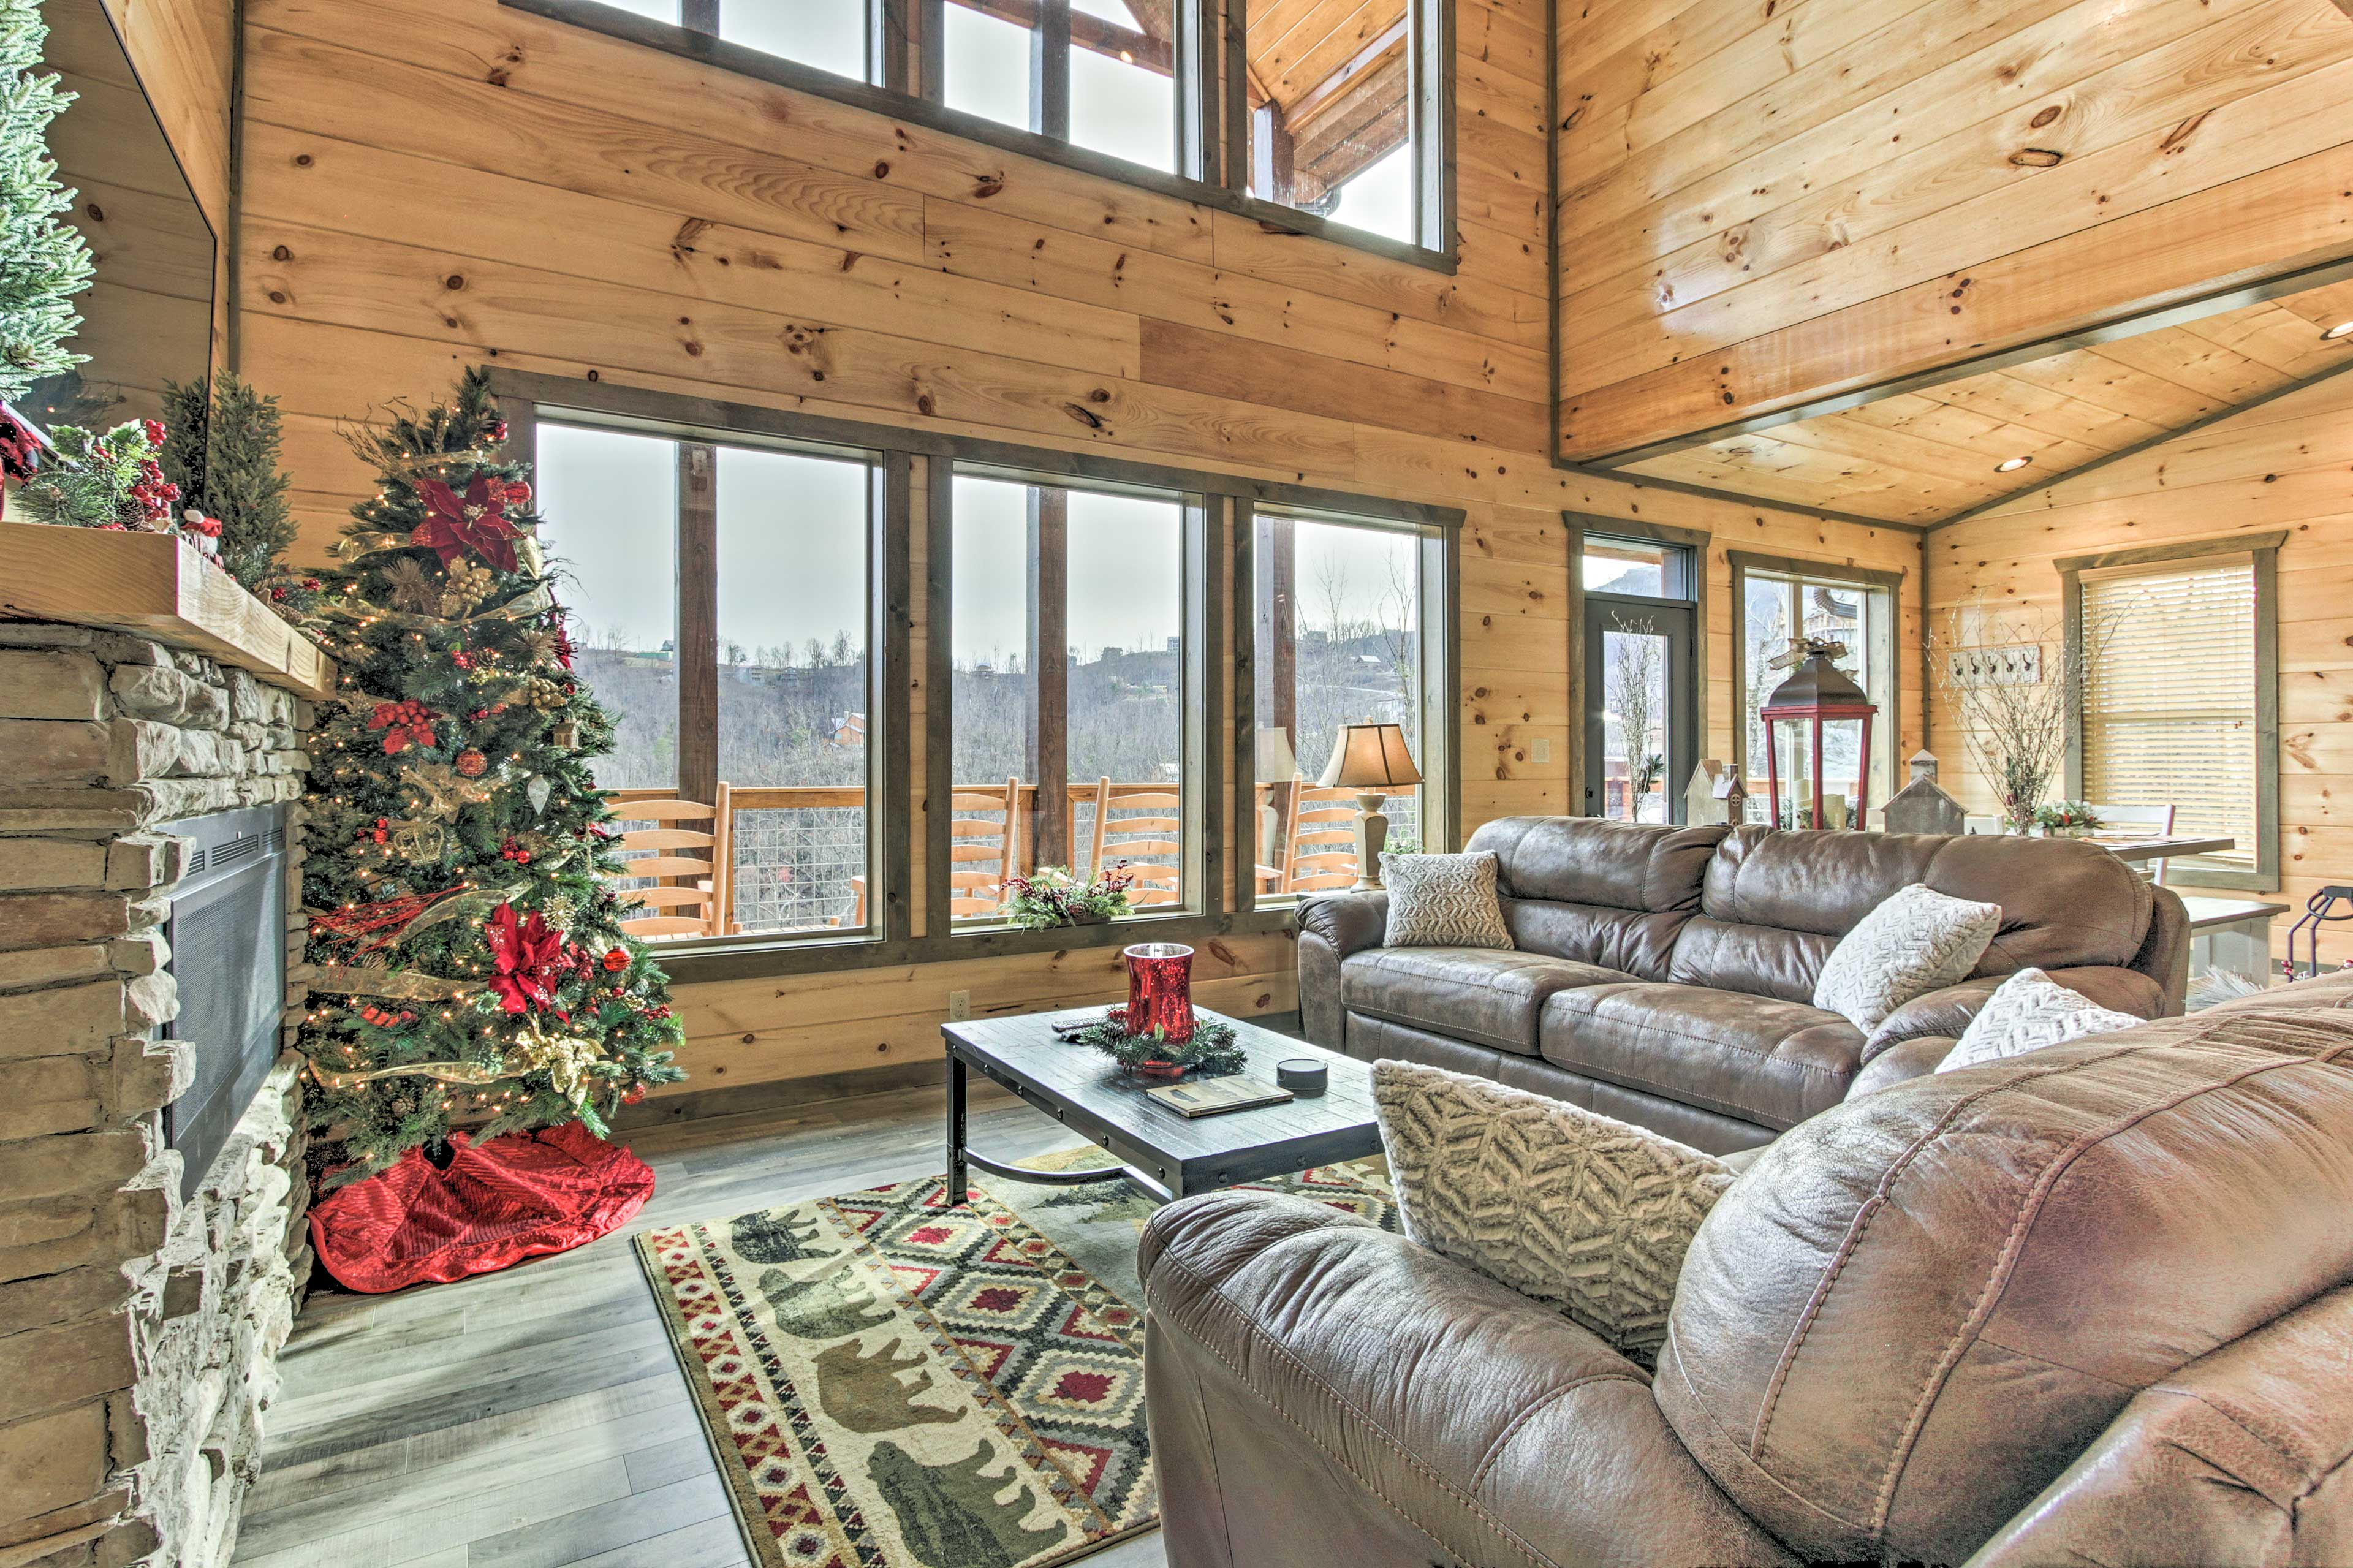 Find your Tennessee mountain refuge in this rustic vacation rental!